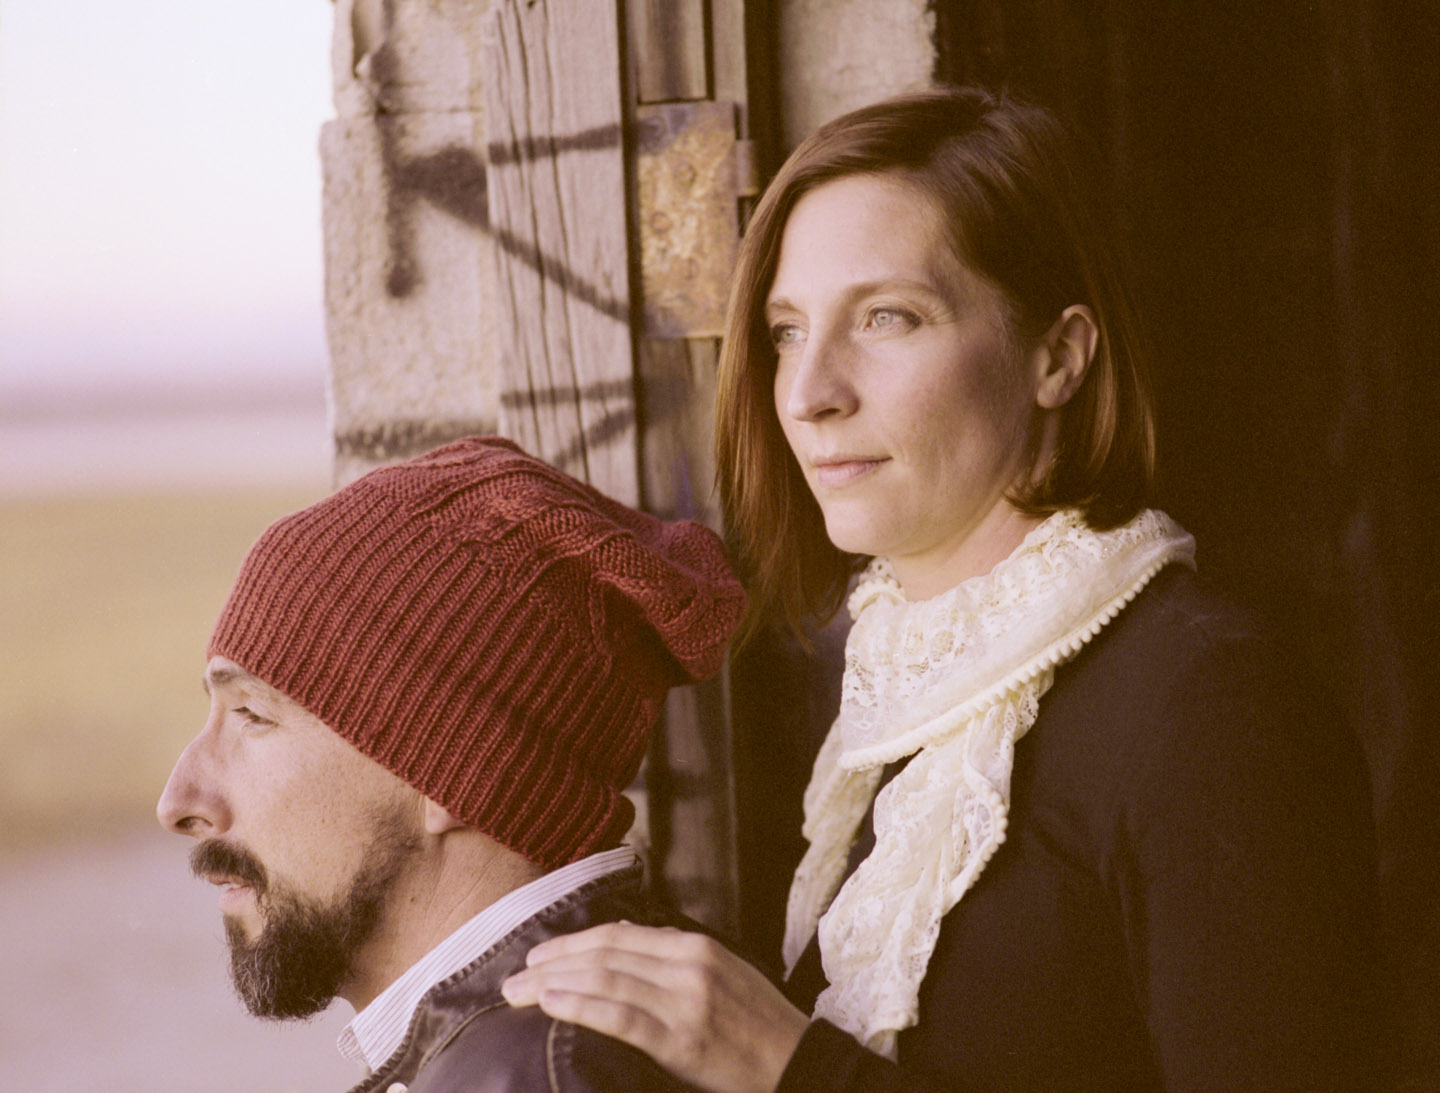 Husband and wife on medium format film